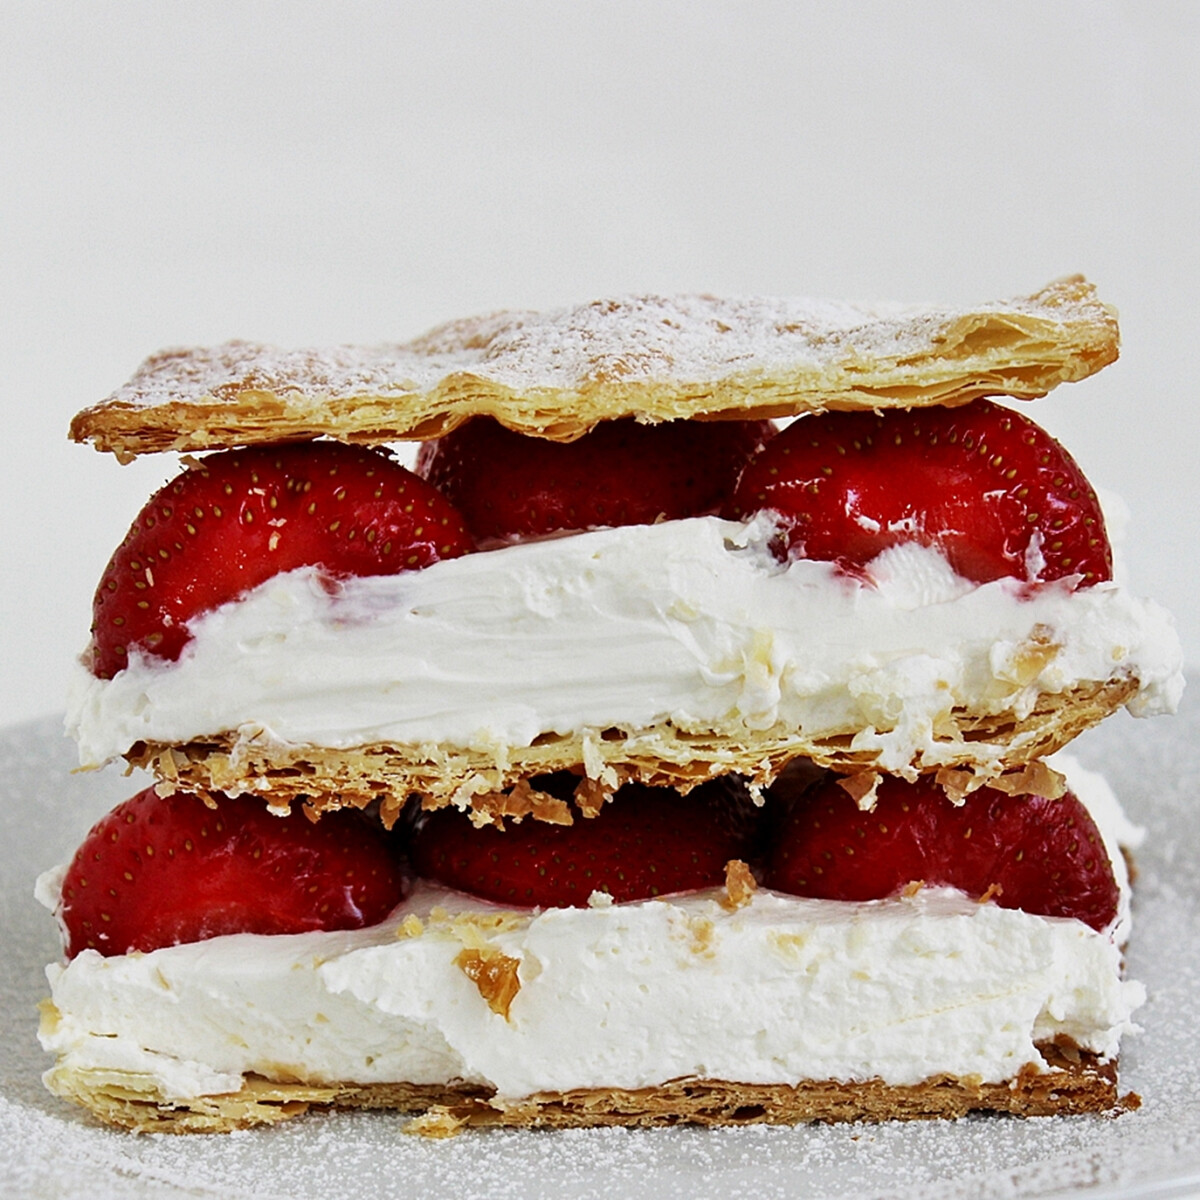 Mille feuille eperrel